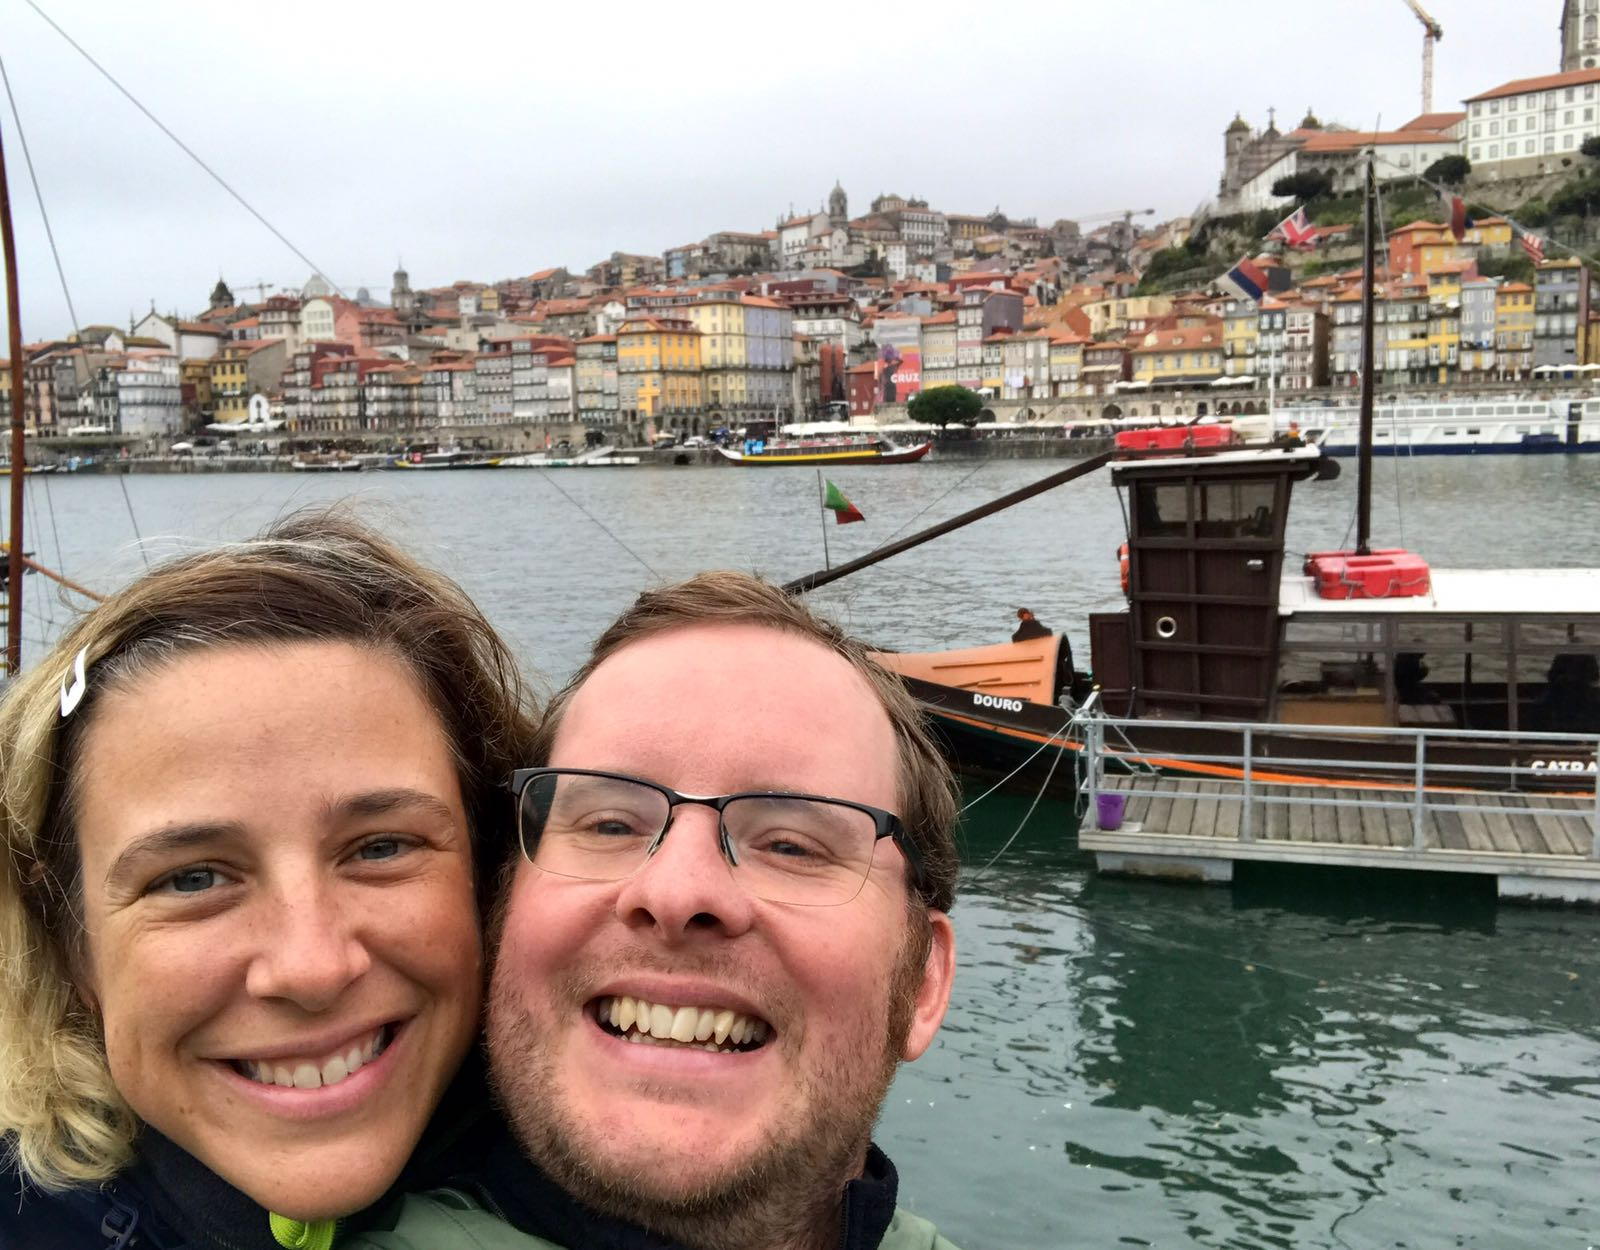 Roz and Tom grinning in front of the Douro river